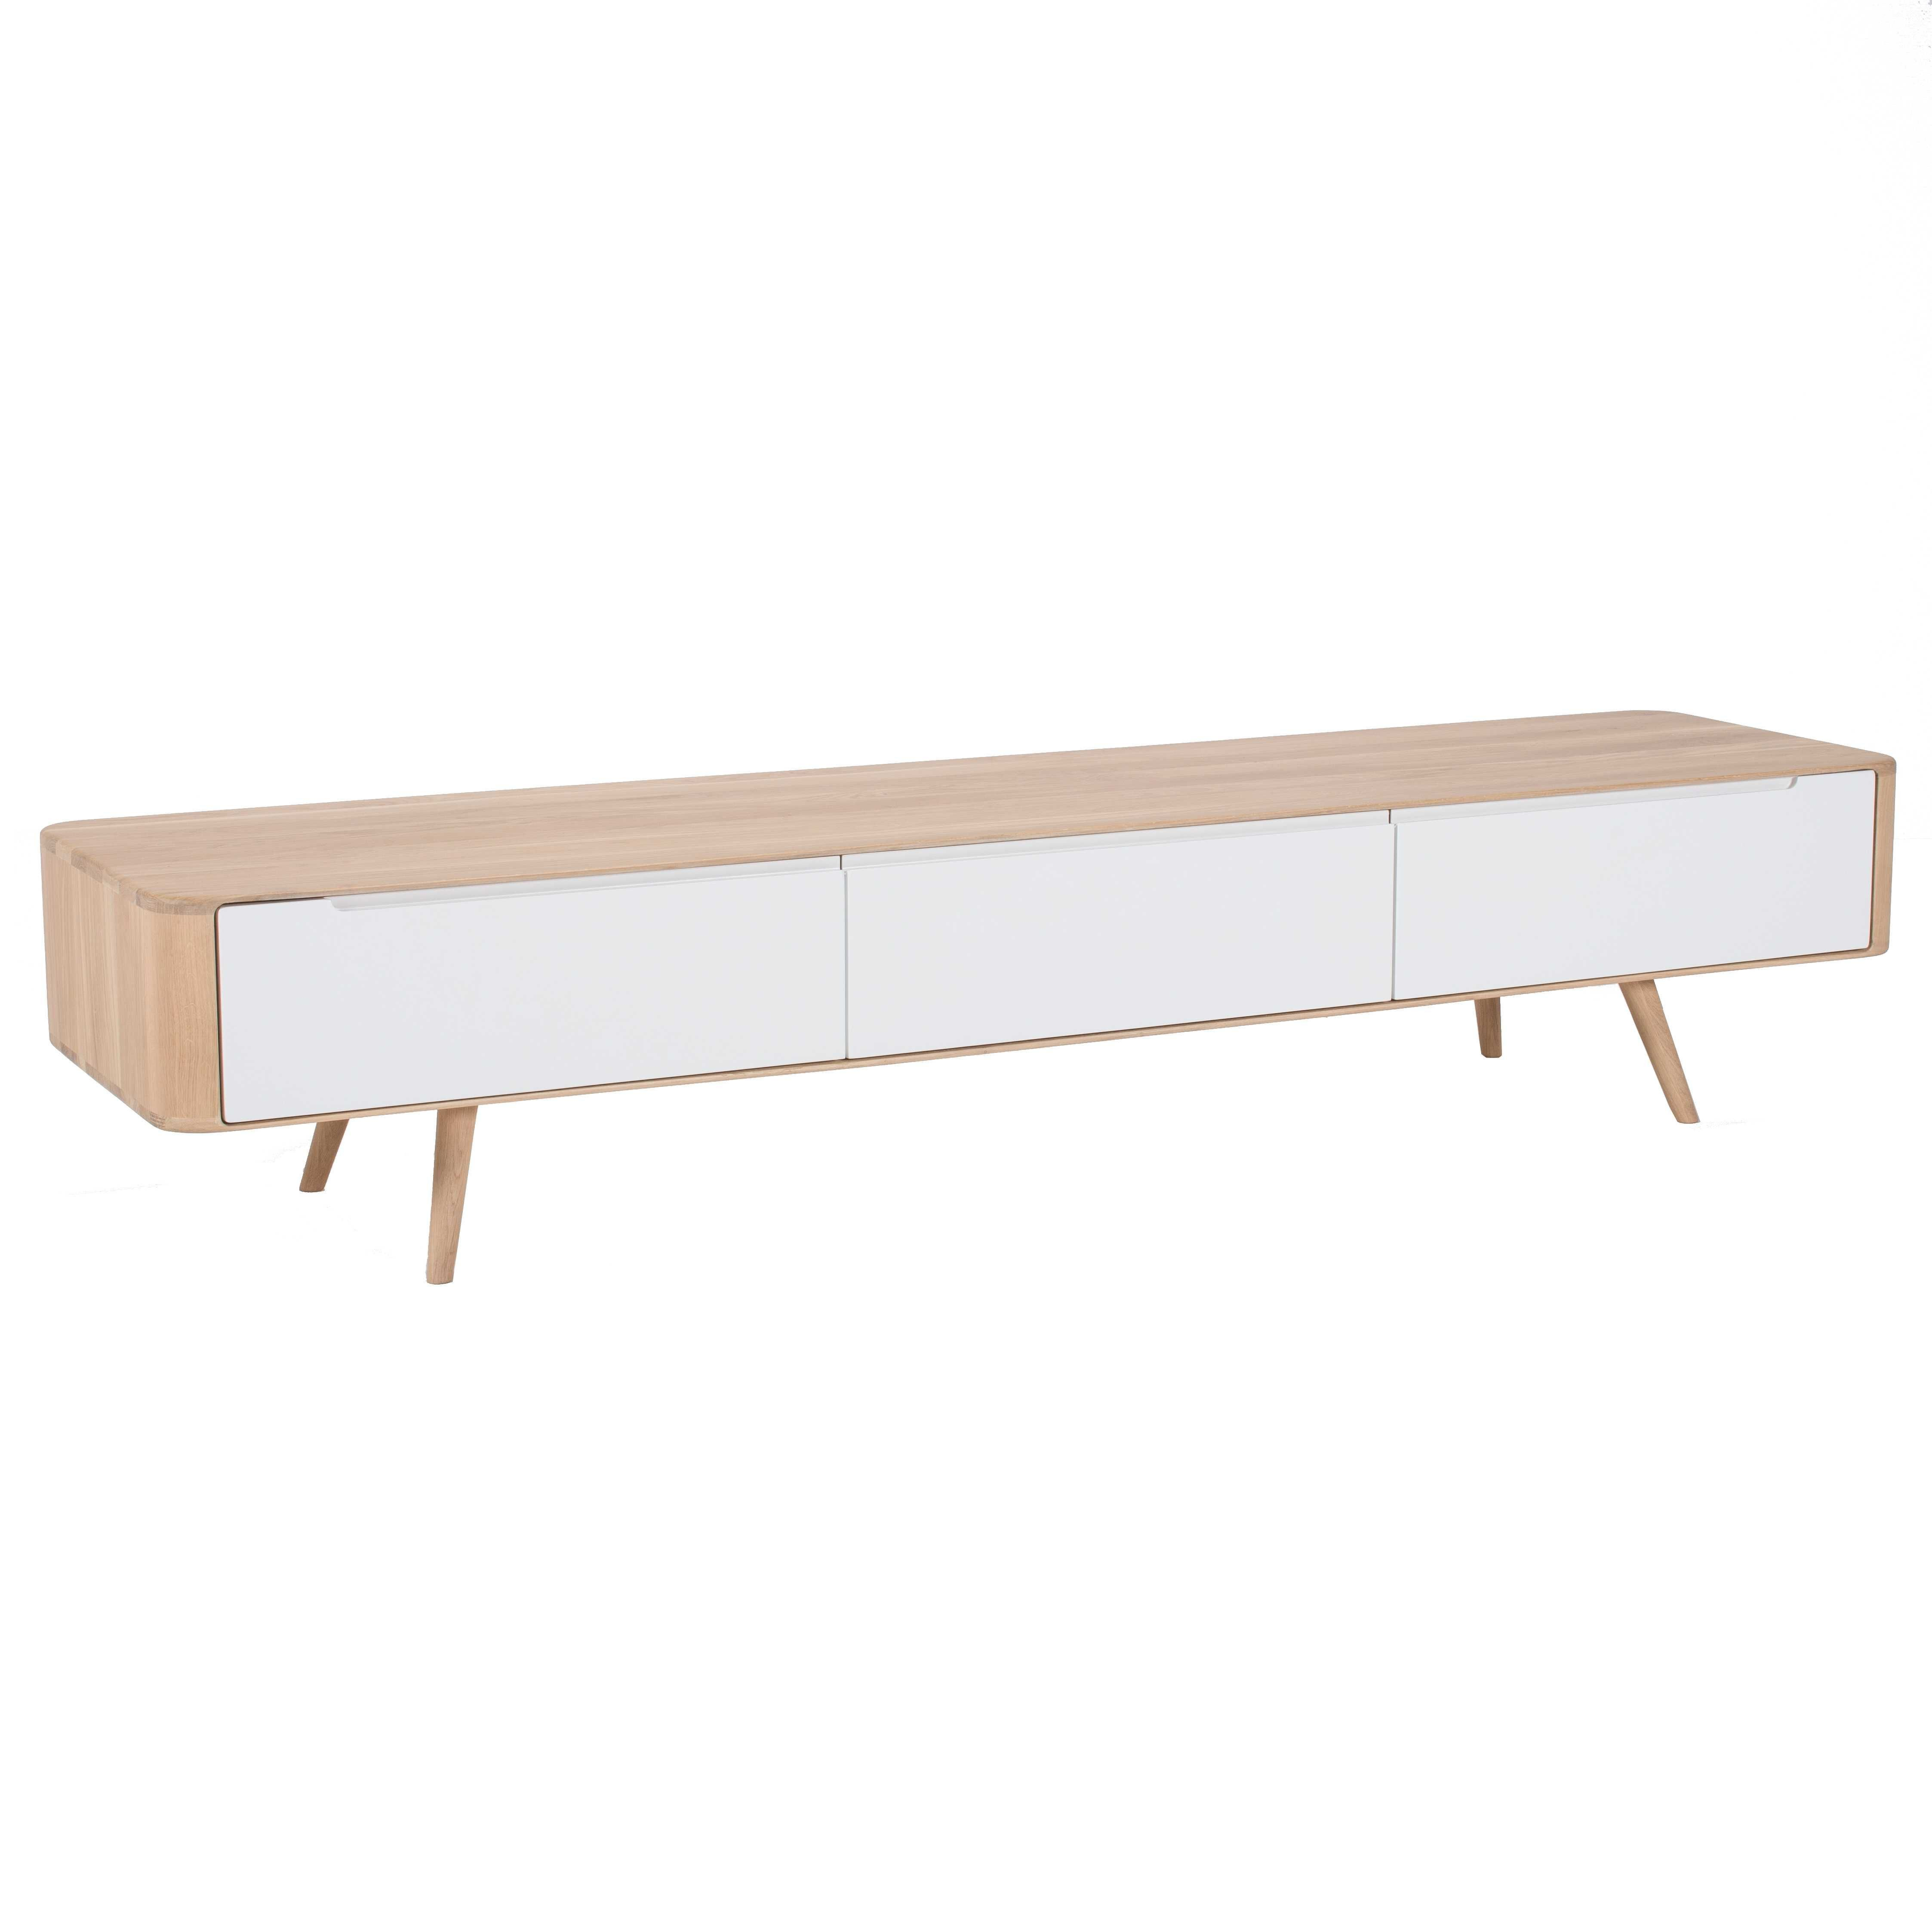 Diepe Tv Kast.Gazzda Ena Tv Dressoir 225x55 Whitewash Flinders Verzendt Gratis